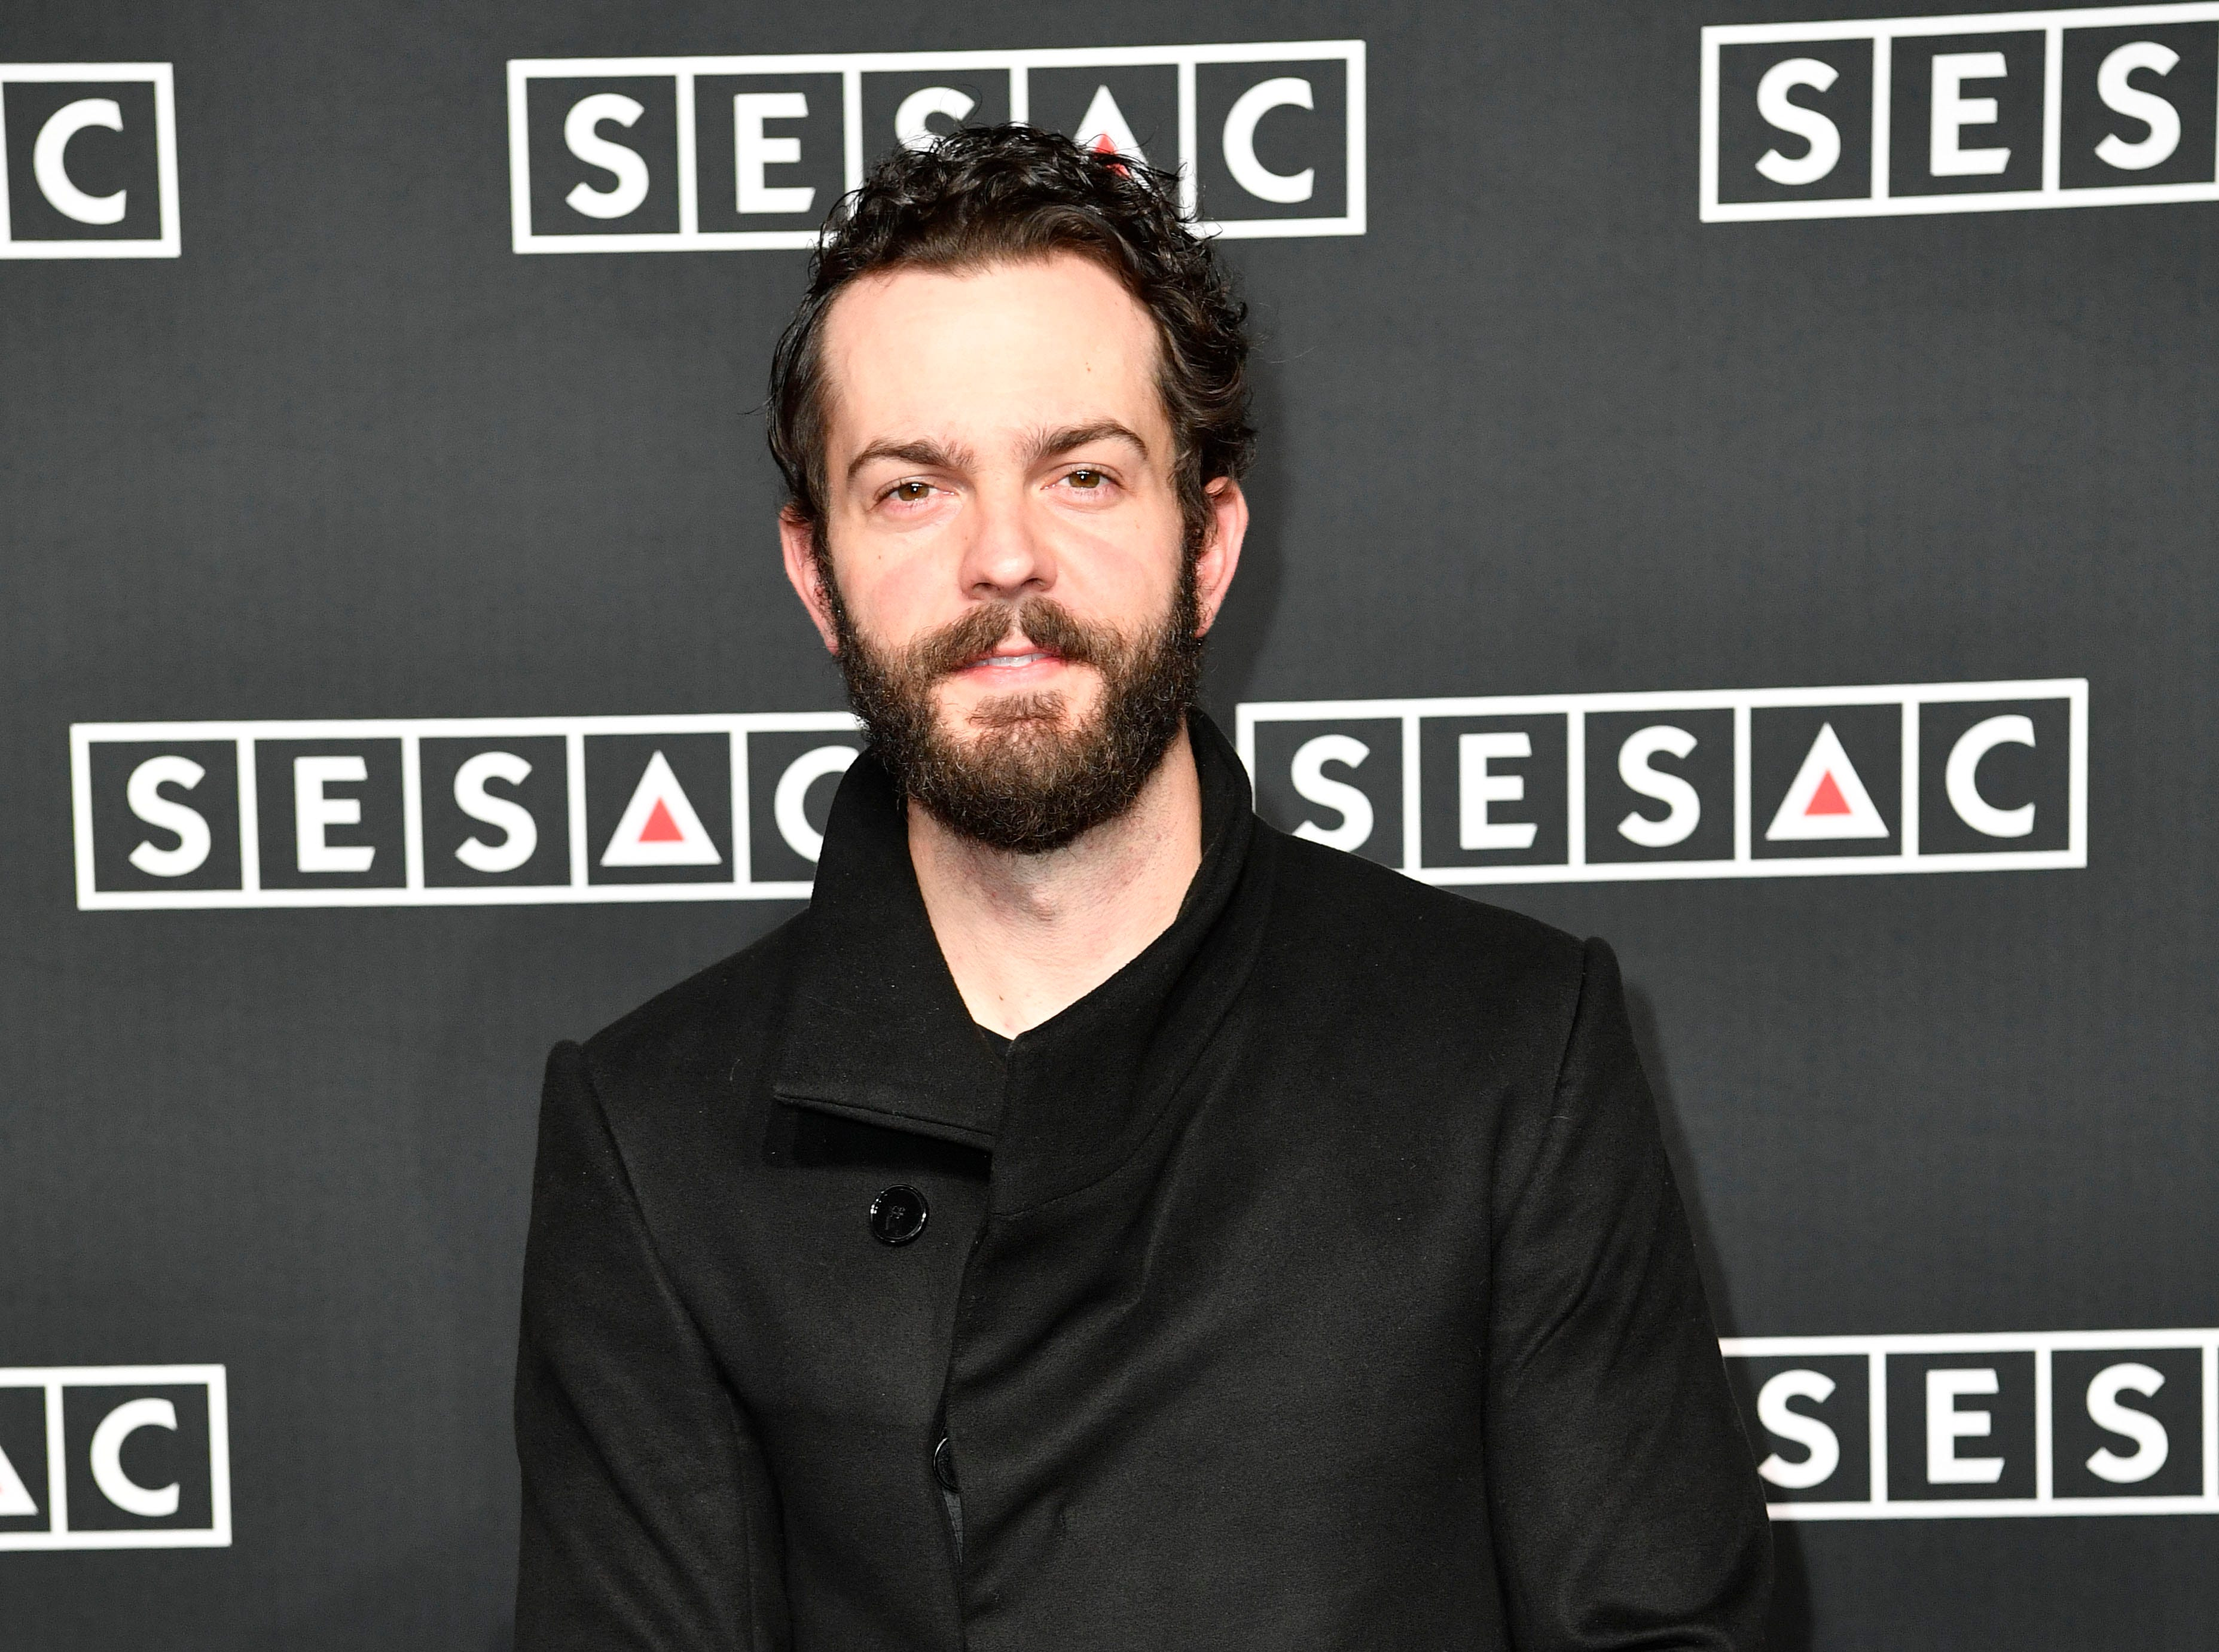 Ryan Kinder on the red carpet at the SESAC Nashville Music Awards at the Country Music Hall of Fame and Museum Sunday Nov. 11, 2018, in Nashville, Tenn.